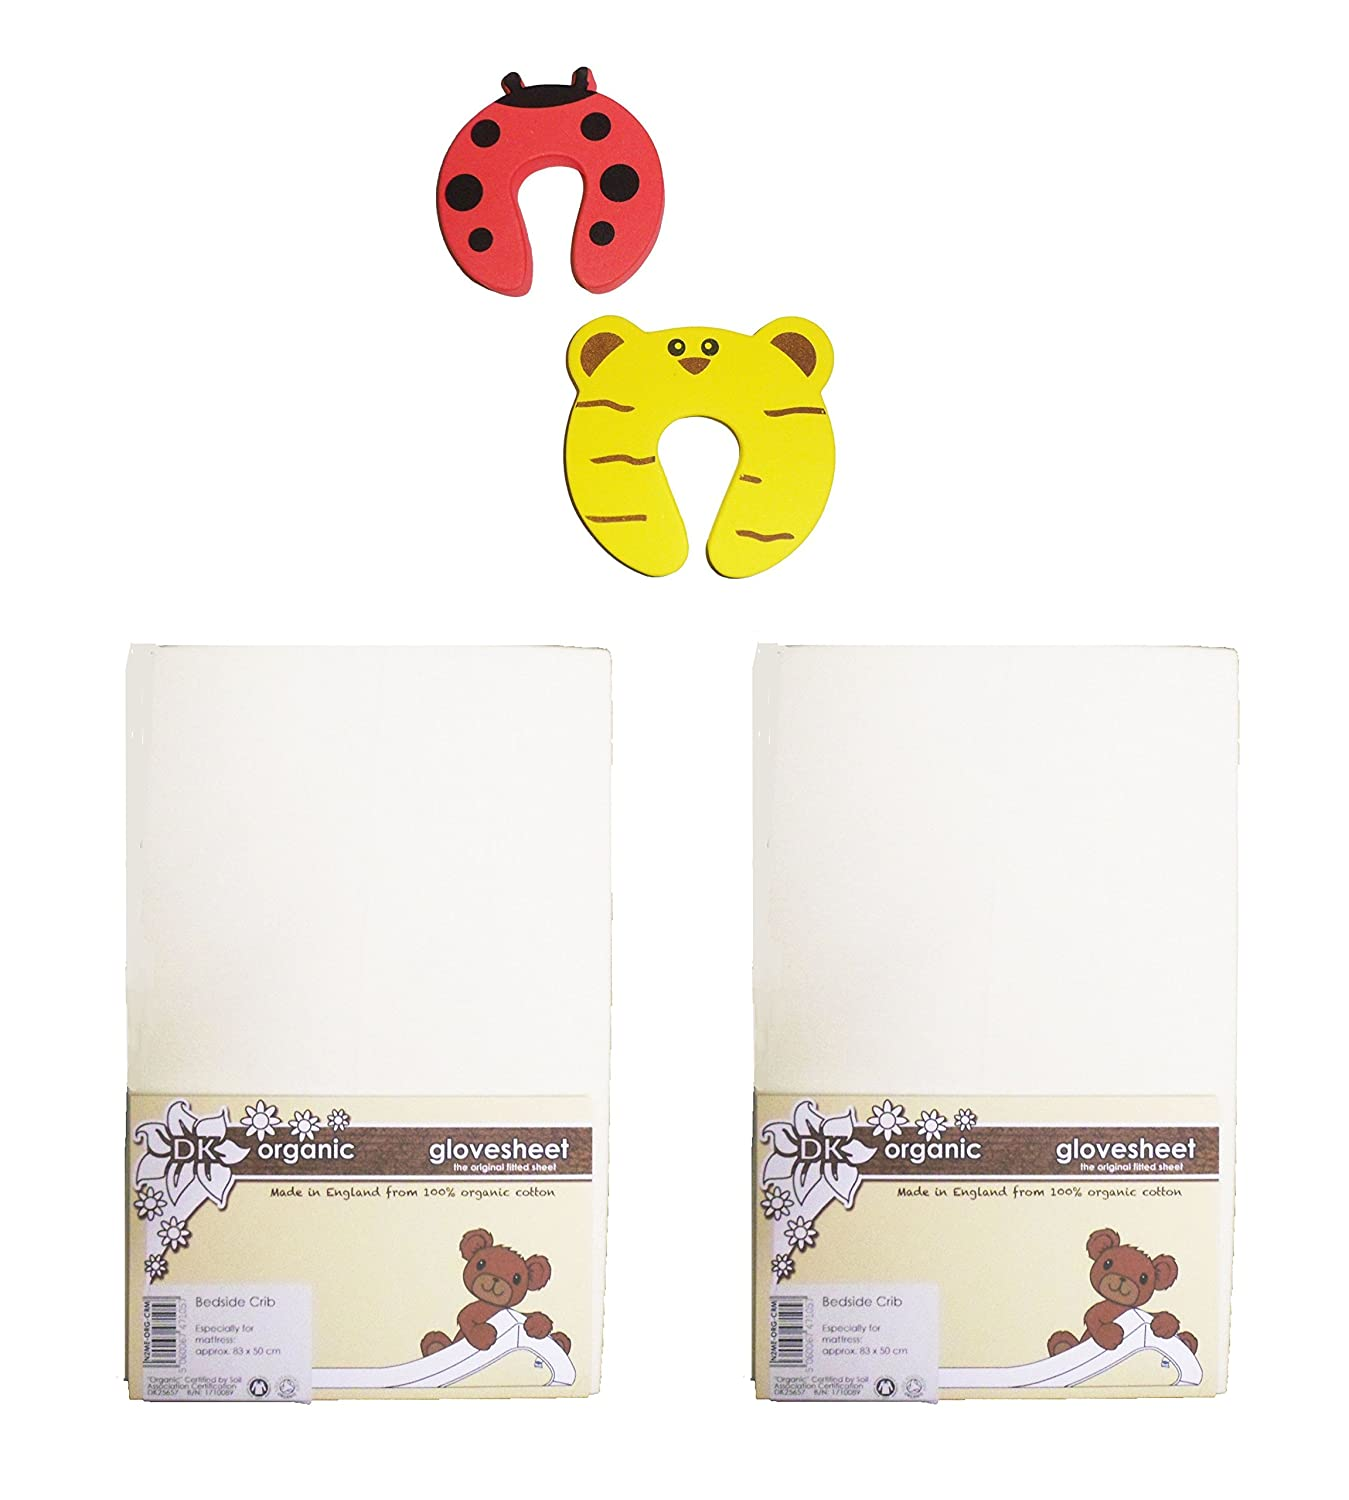 DK Glovesheets GOTS Certified 100% Organic Cotton Cream Two Fitted 83 x 50cm Crib Sheets - Specifically Designed To Fit The Next To Me Mattress - Plus 2 Pack Of Safety Doorstoppers